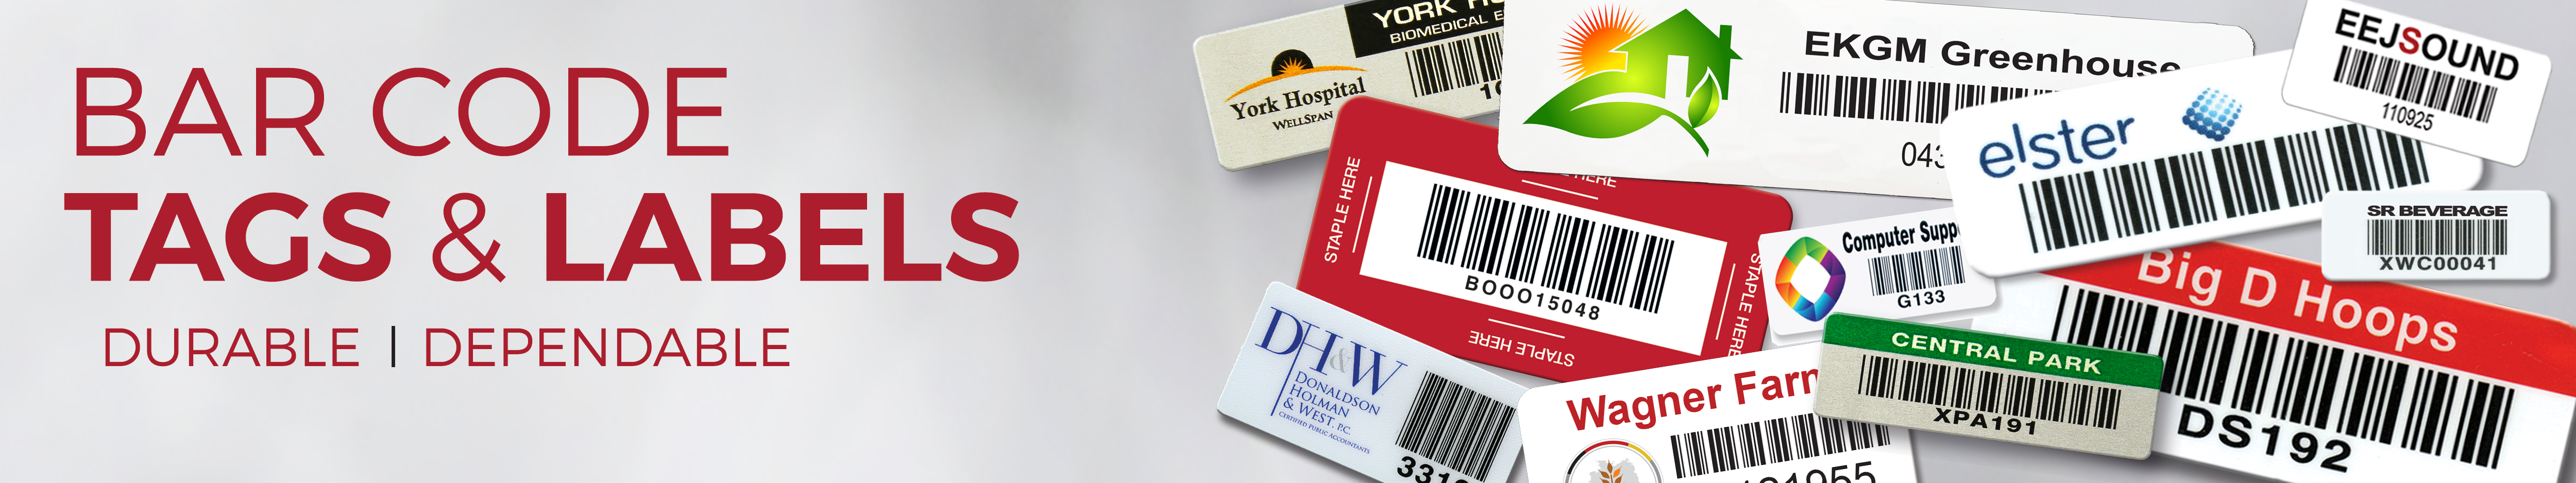 Barcode Labels & tags